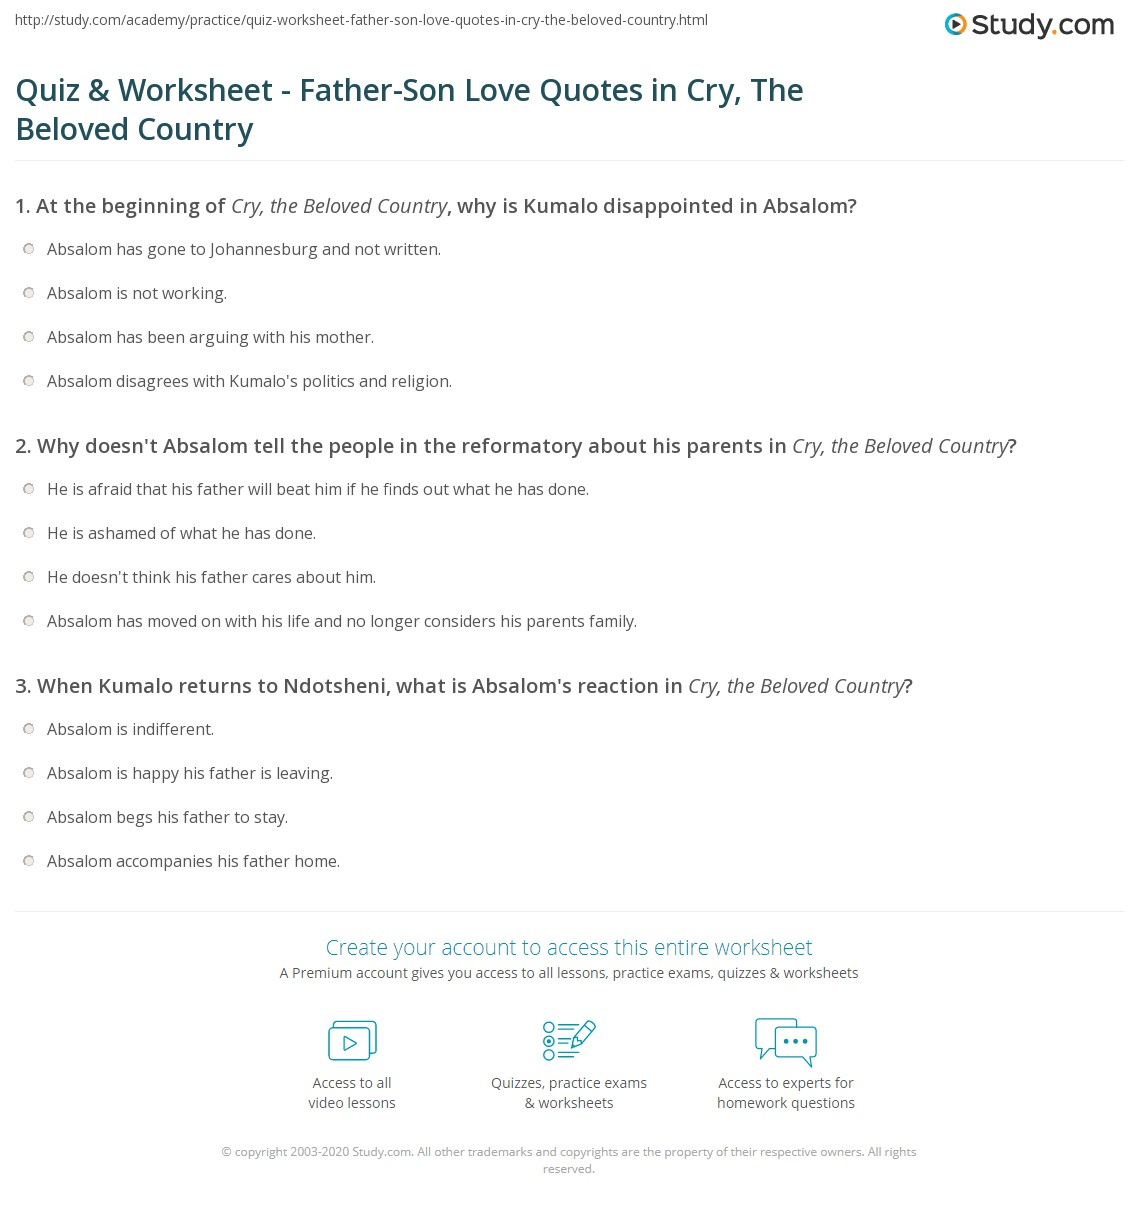 Father Son Love Quotes Inspiration Quiz & Worksheet  Fatherson Love Quotes In Cry The Beloved